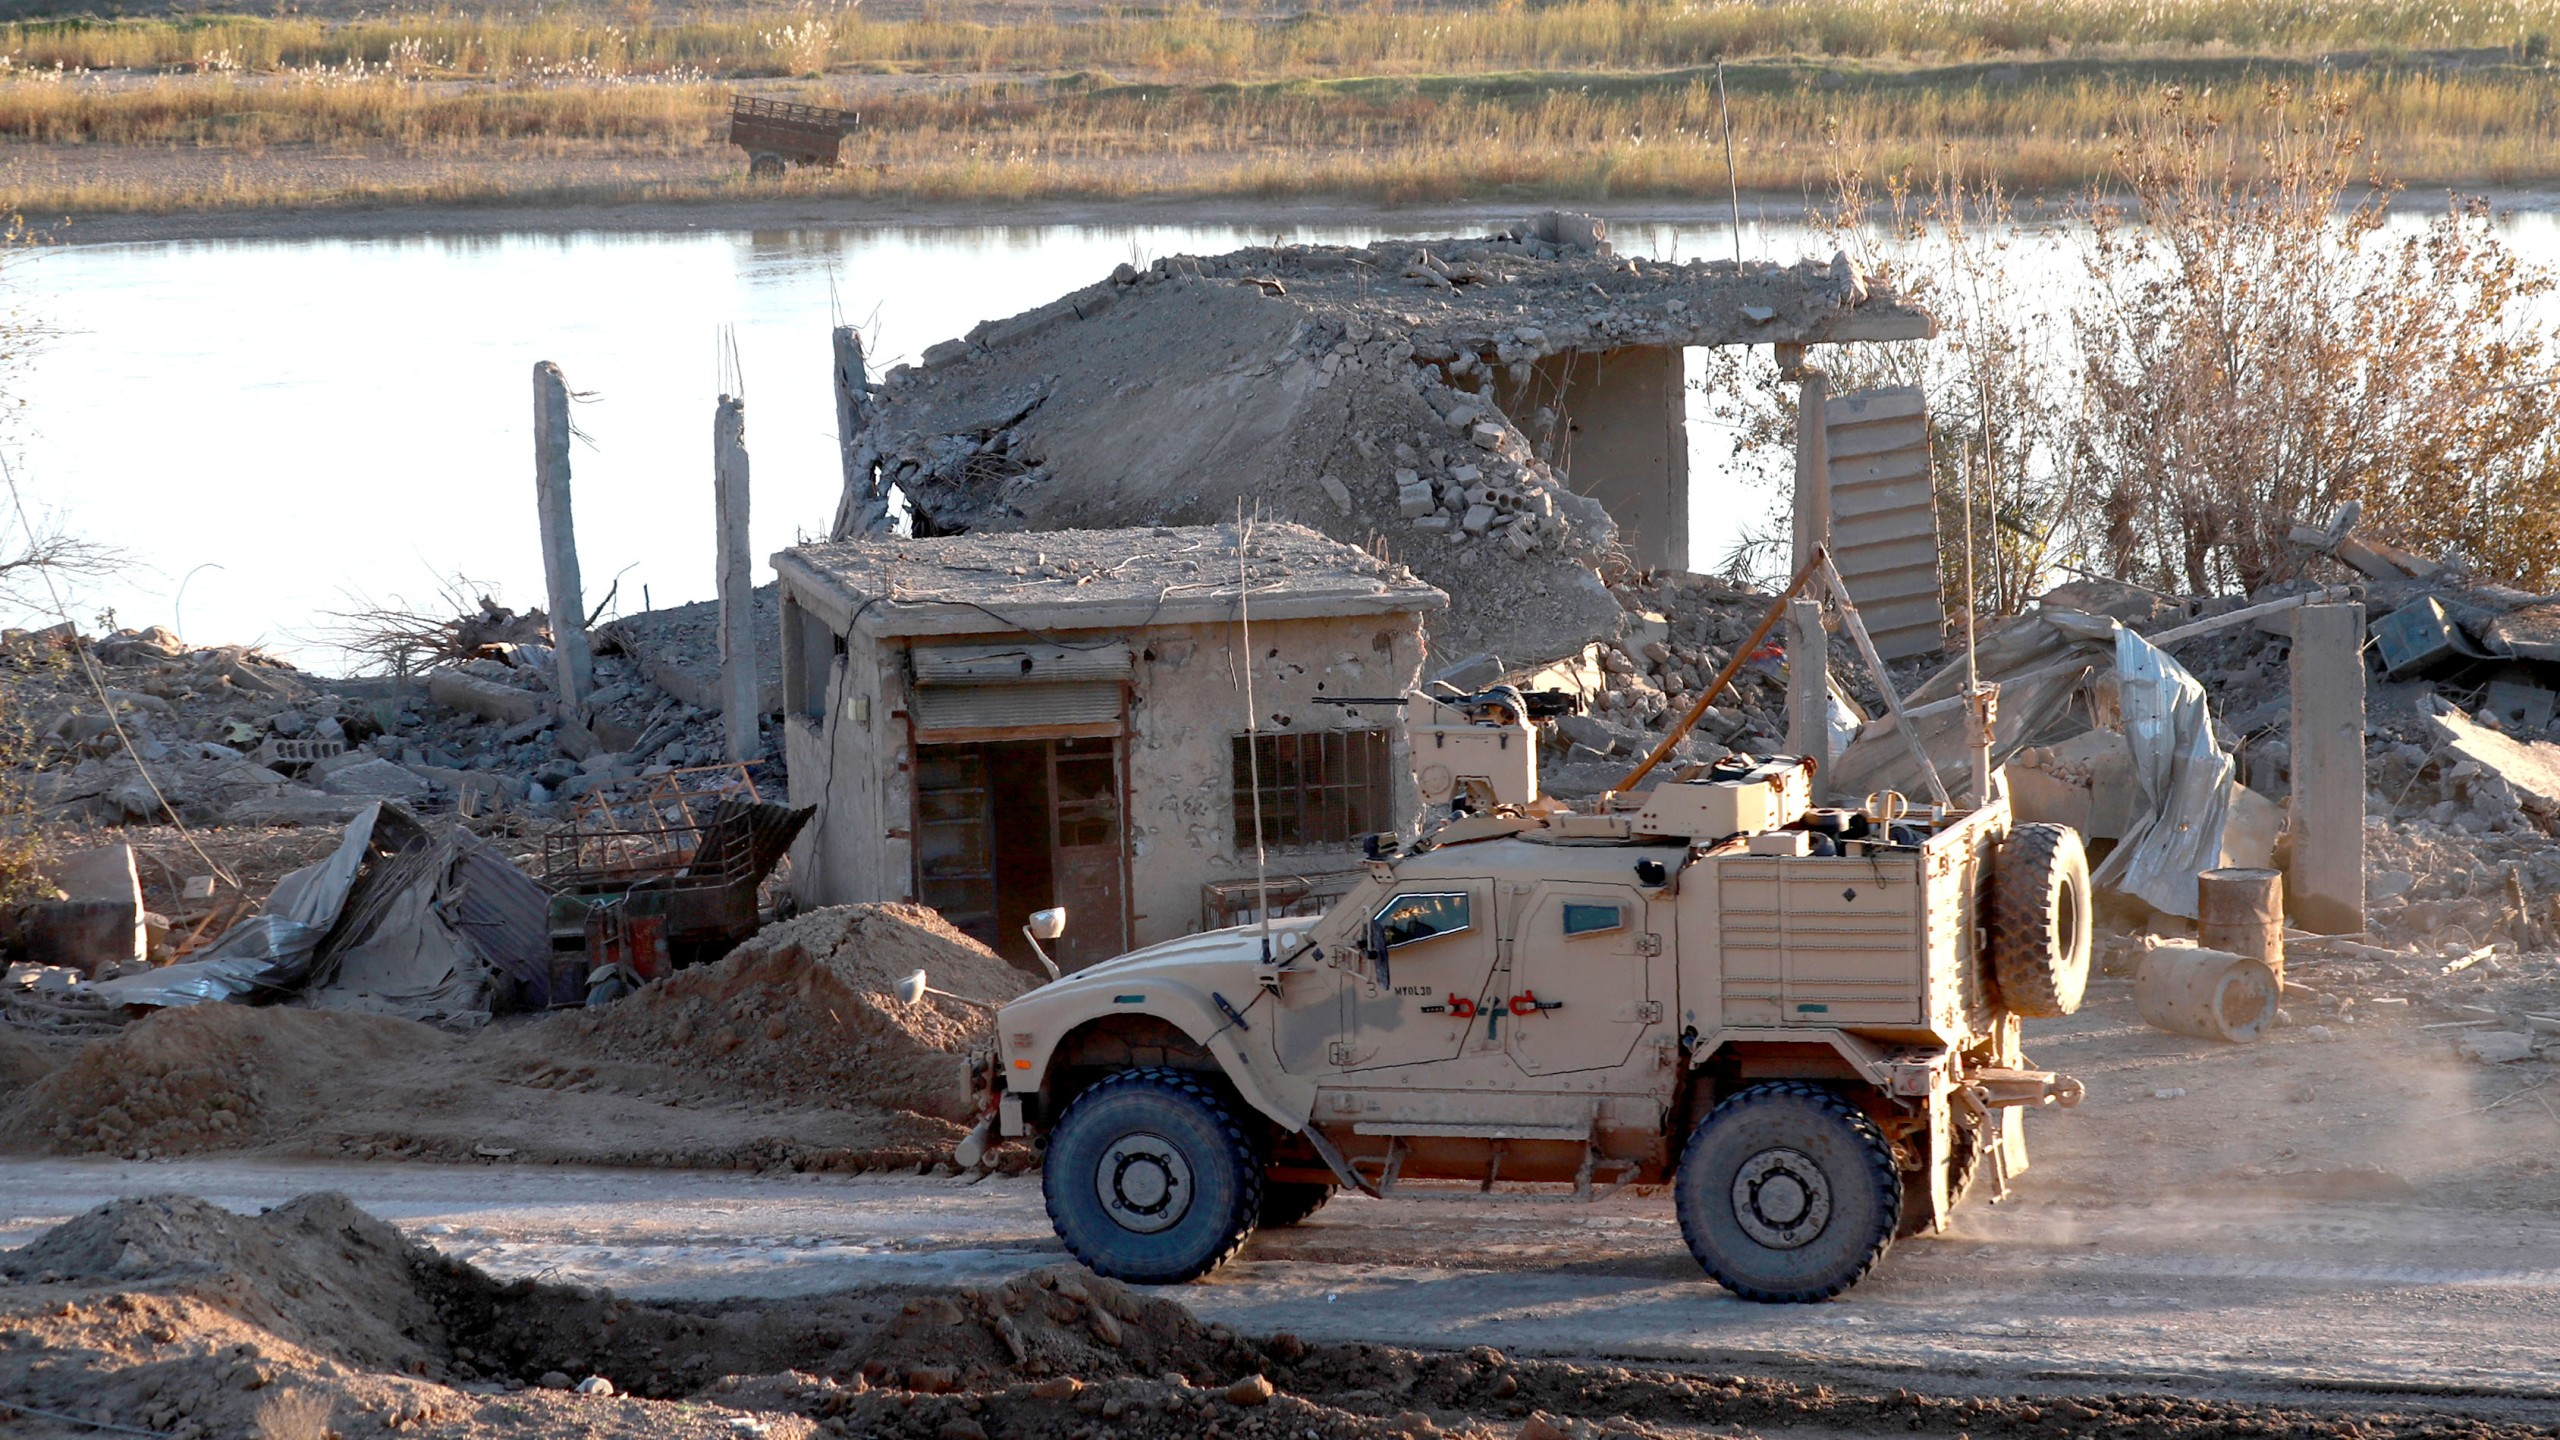 A U.S. army vehicle is seen in the Deir Ezzor province in eastern Syria, on Dec. 15, 2018. (Credit: Delil Souleiman/AFP/Getty Images)